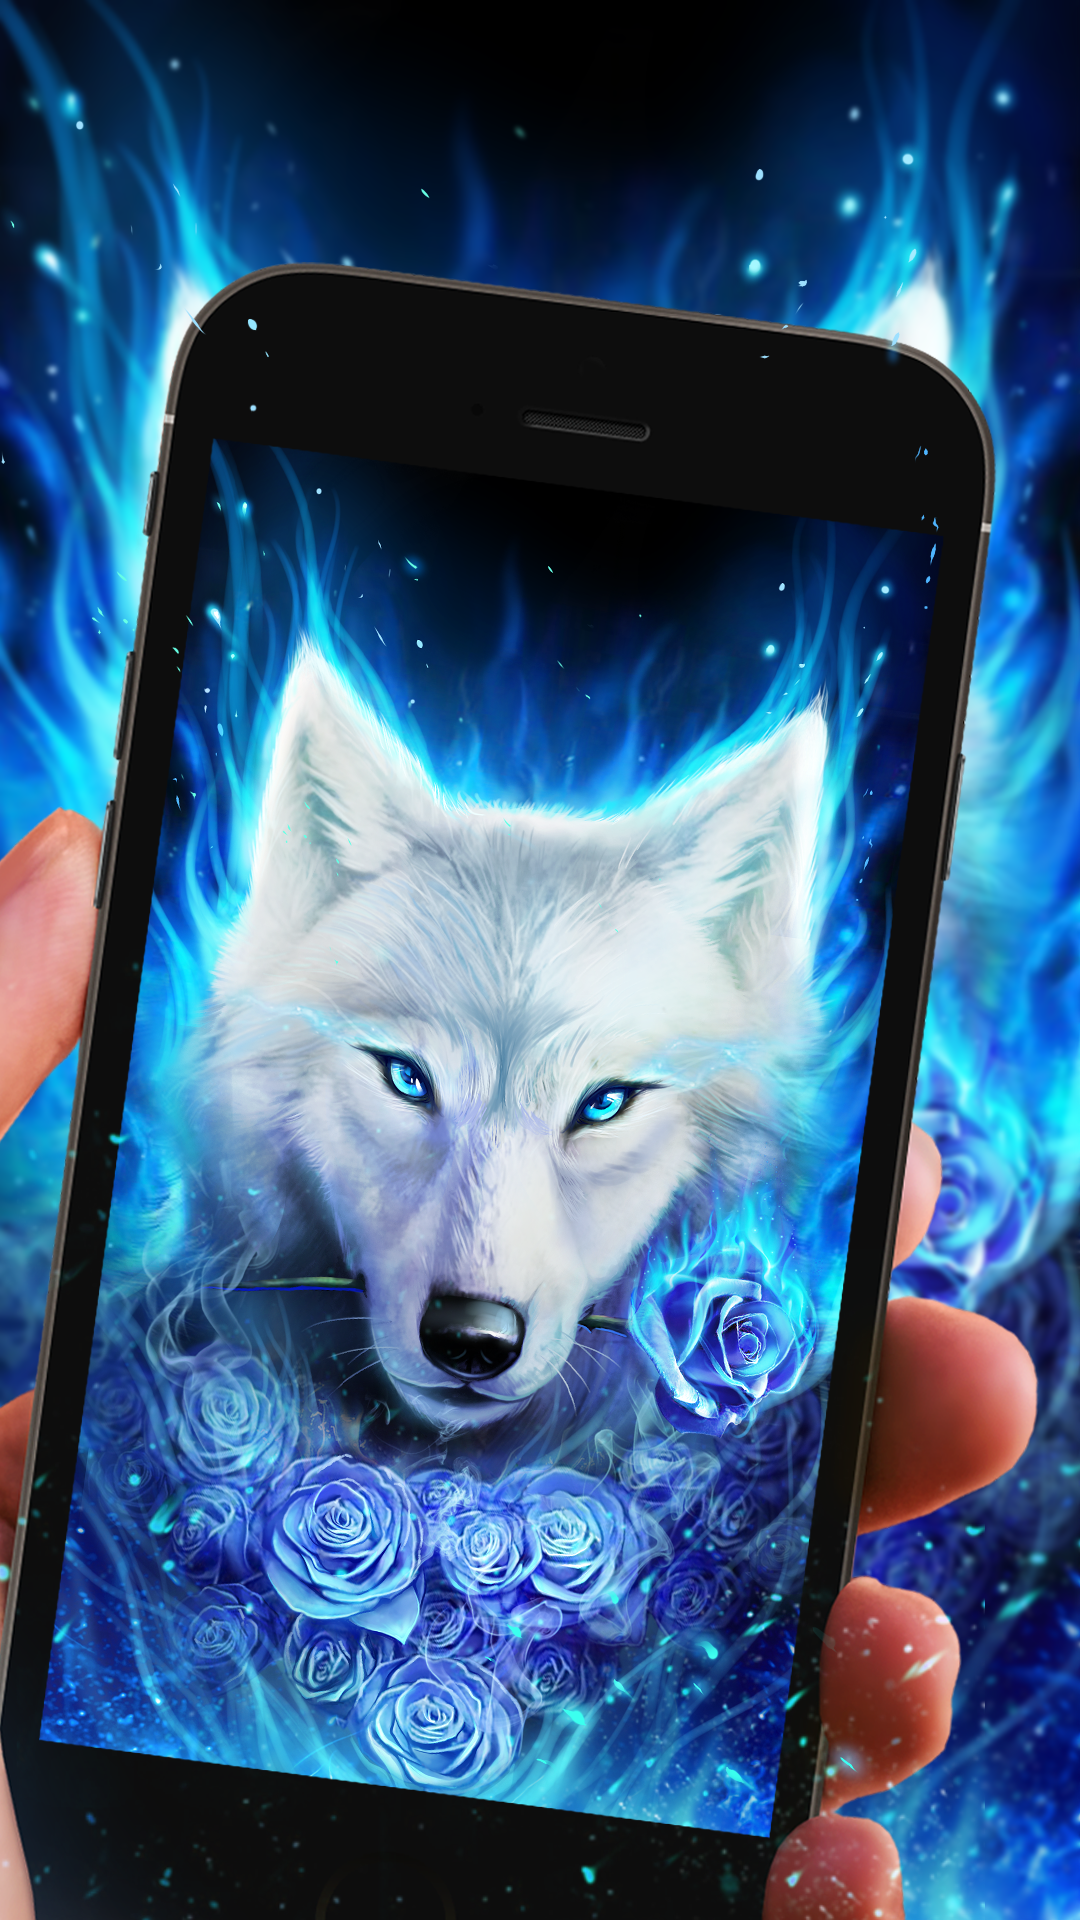 Cool arctic wolf live wallpaper for you! Arctic wolf